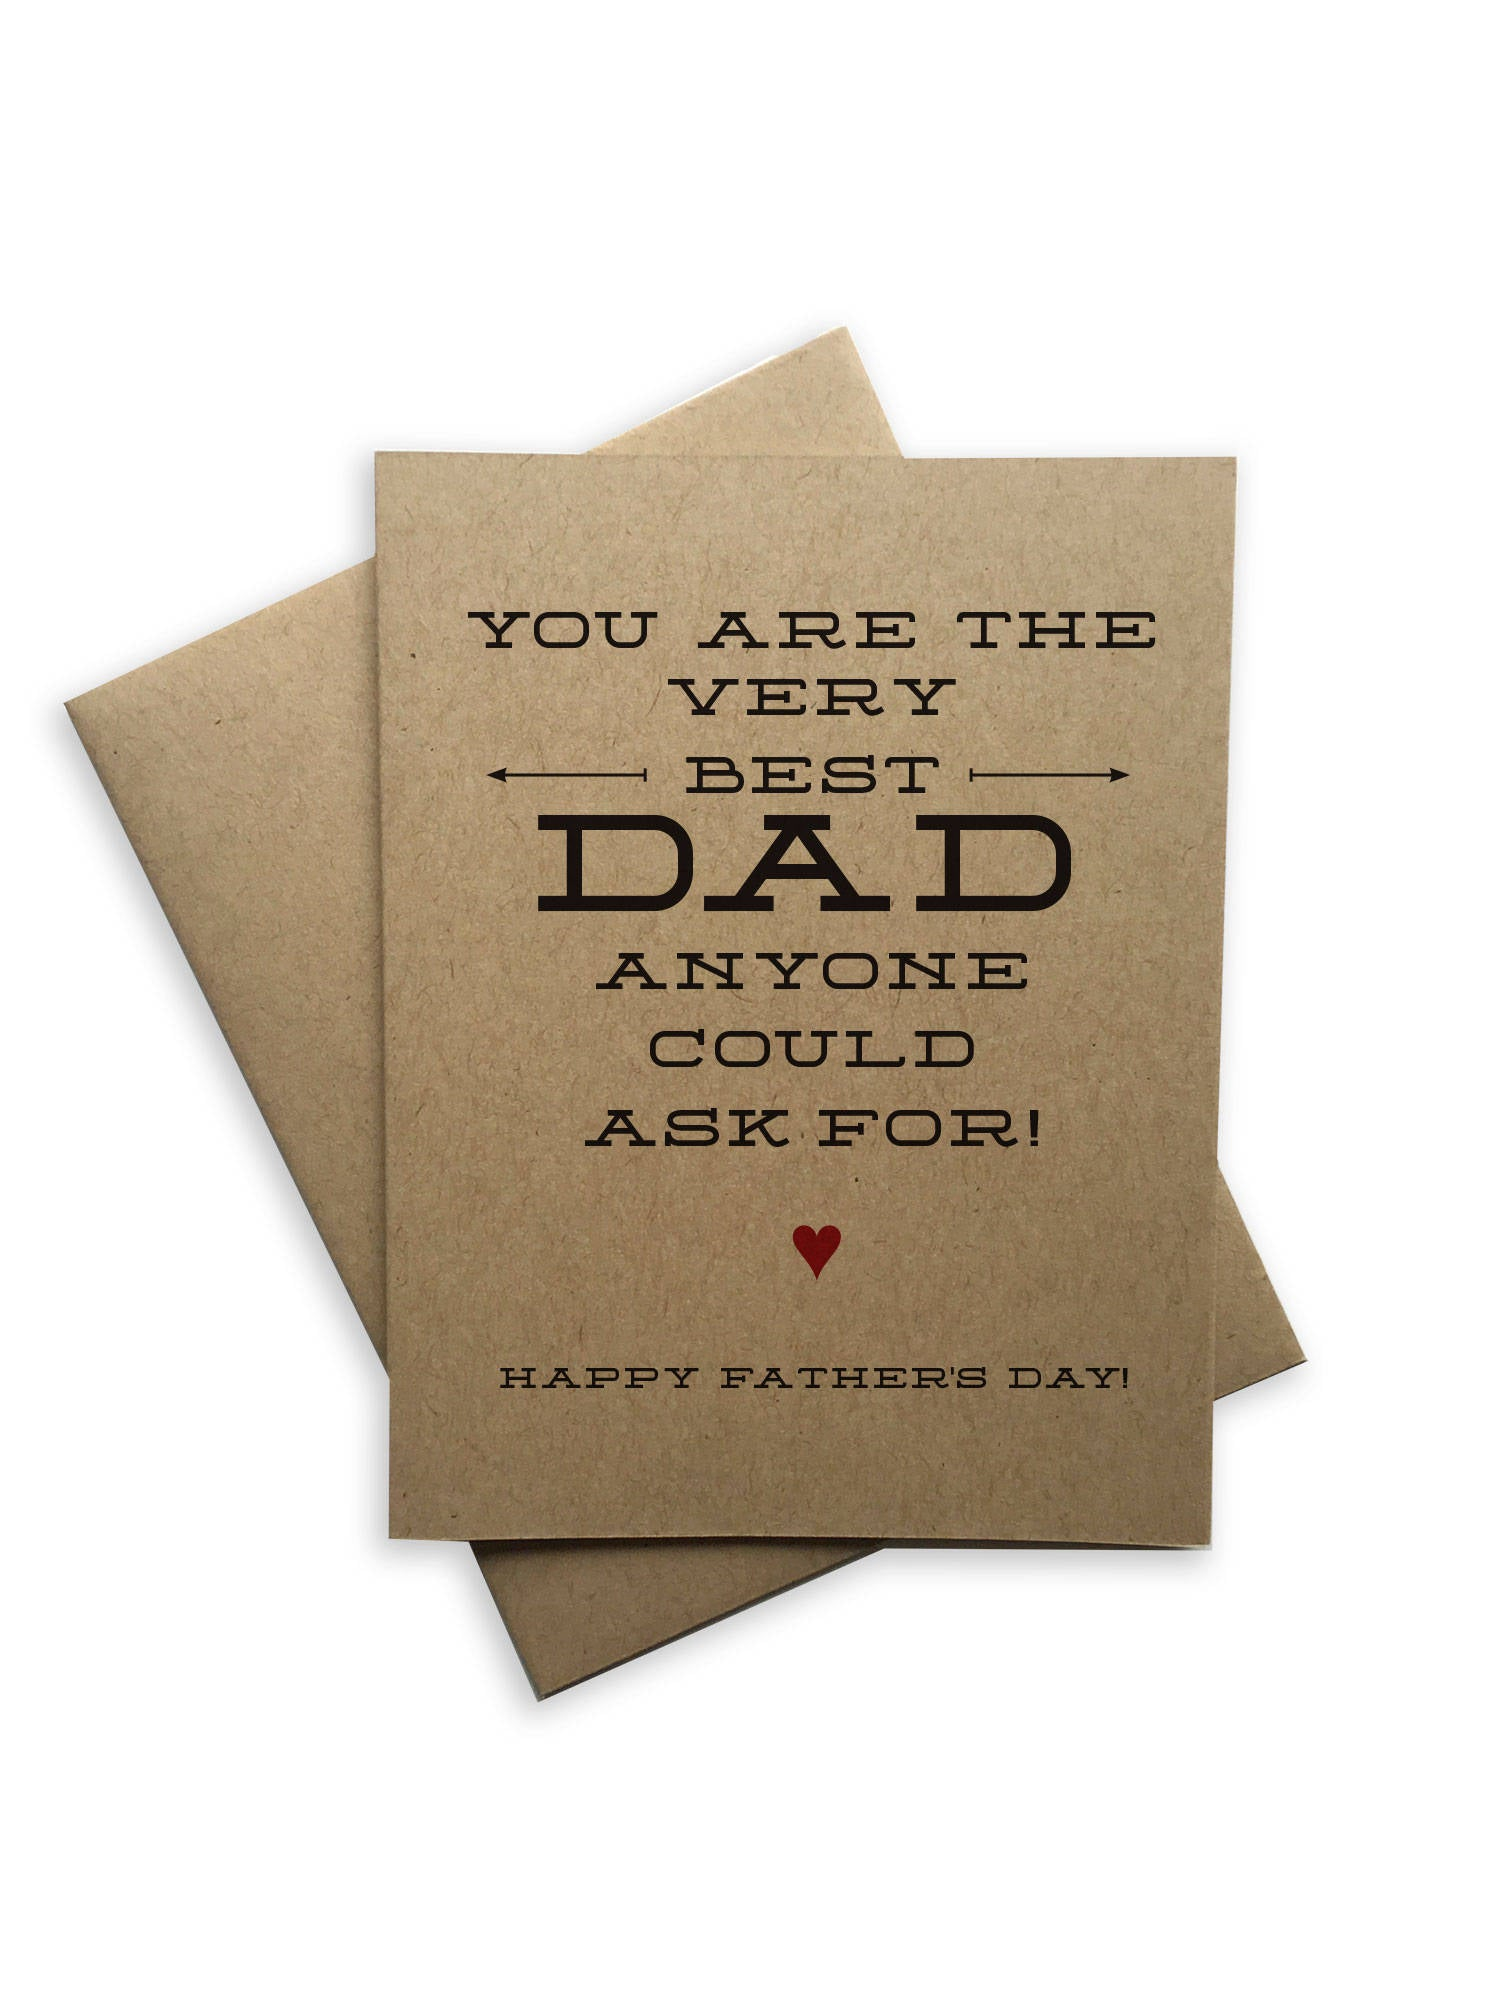 Tiramisu Paperie - You Are The Very Best Dad Notecard